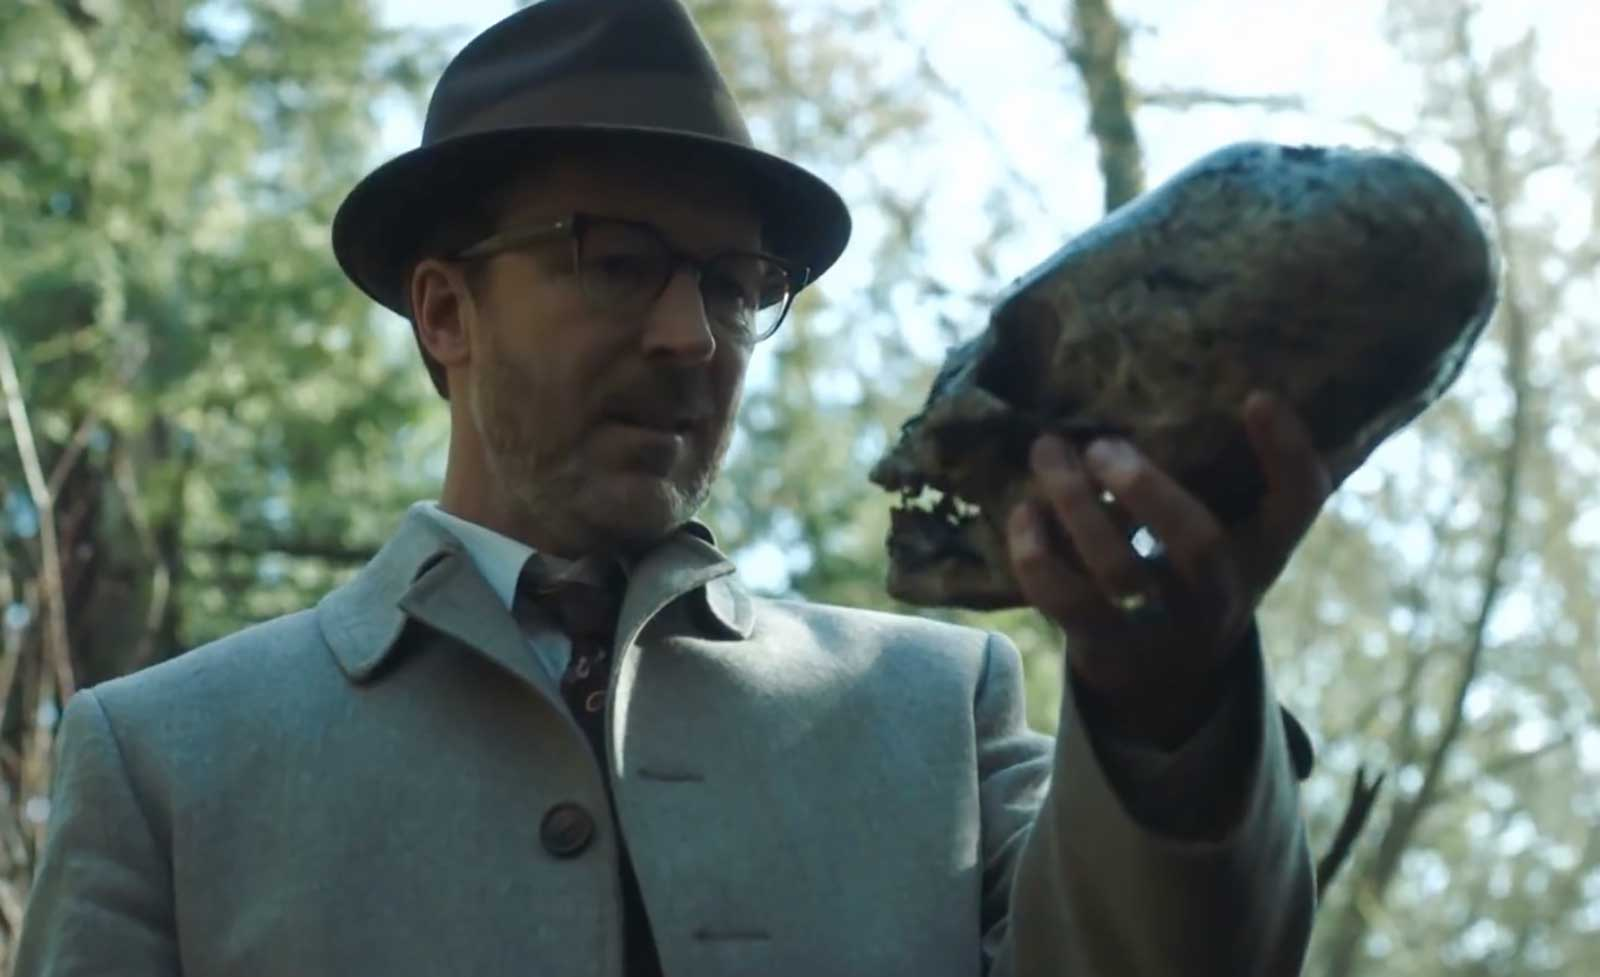 The History Channel had something unique with 'Project Blue Book' but it came and left too soon. We want another season of the series.